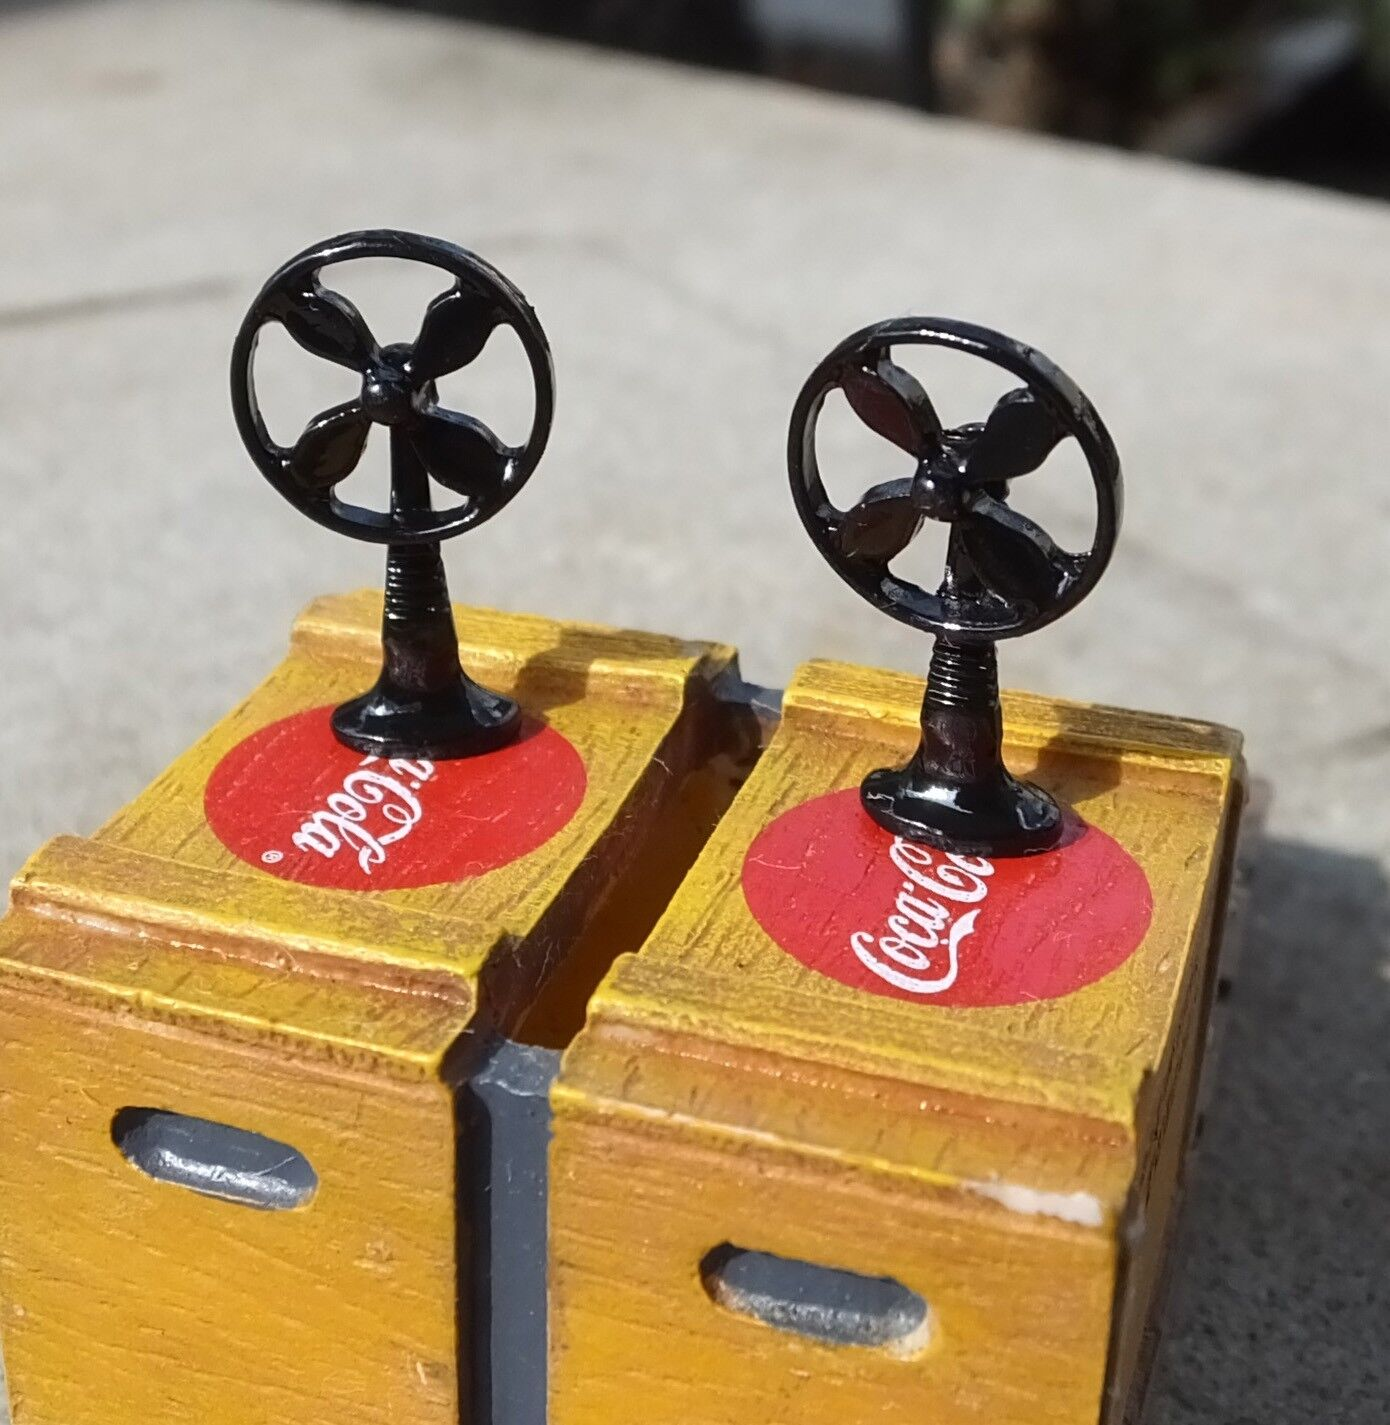 Pair Of Oscillating Fans Sty B (2 Pc Set) Miniatures 1 24 Scale G Diorama Items